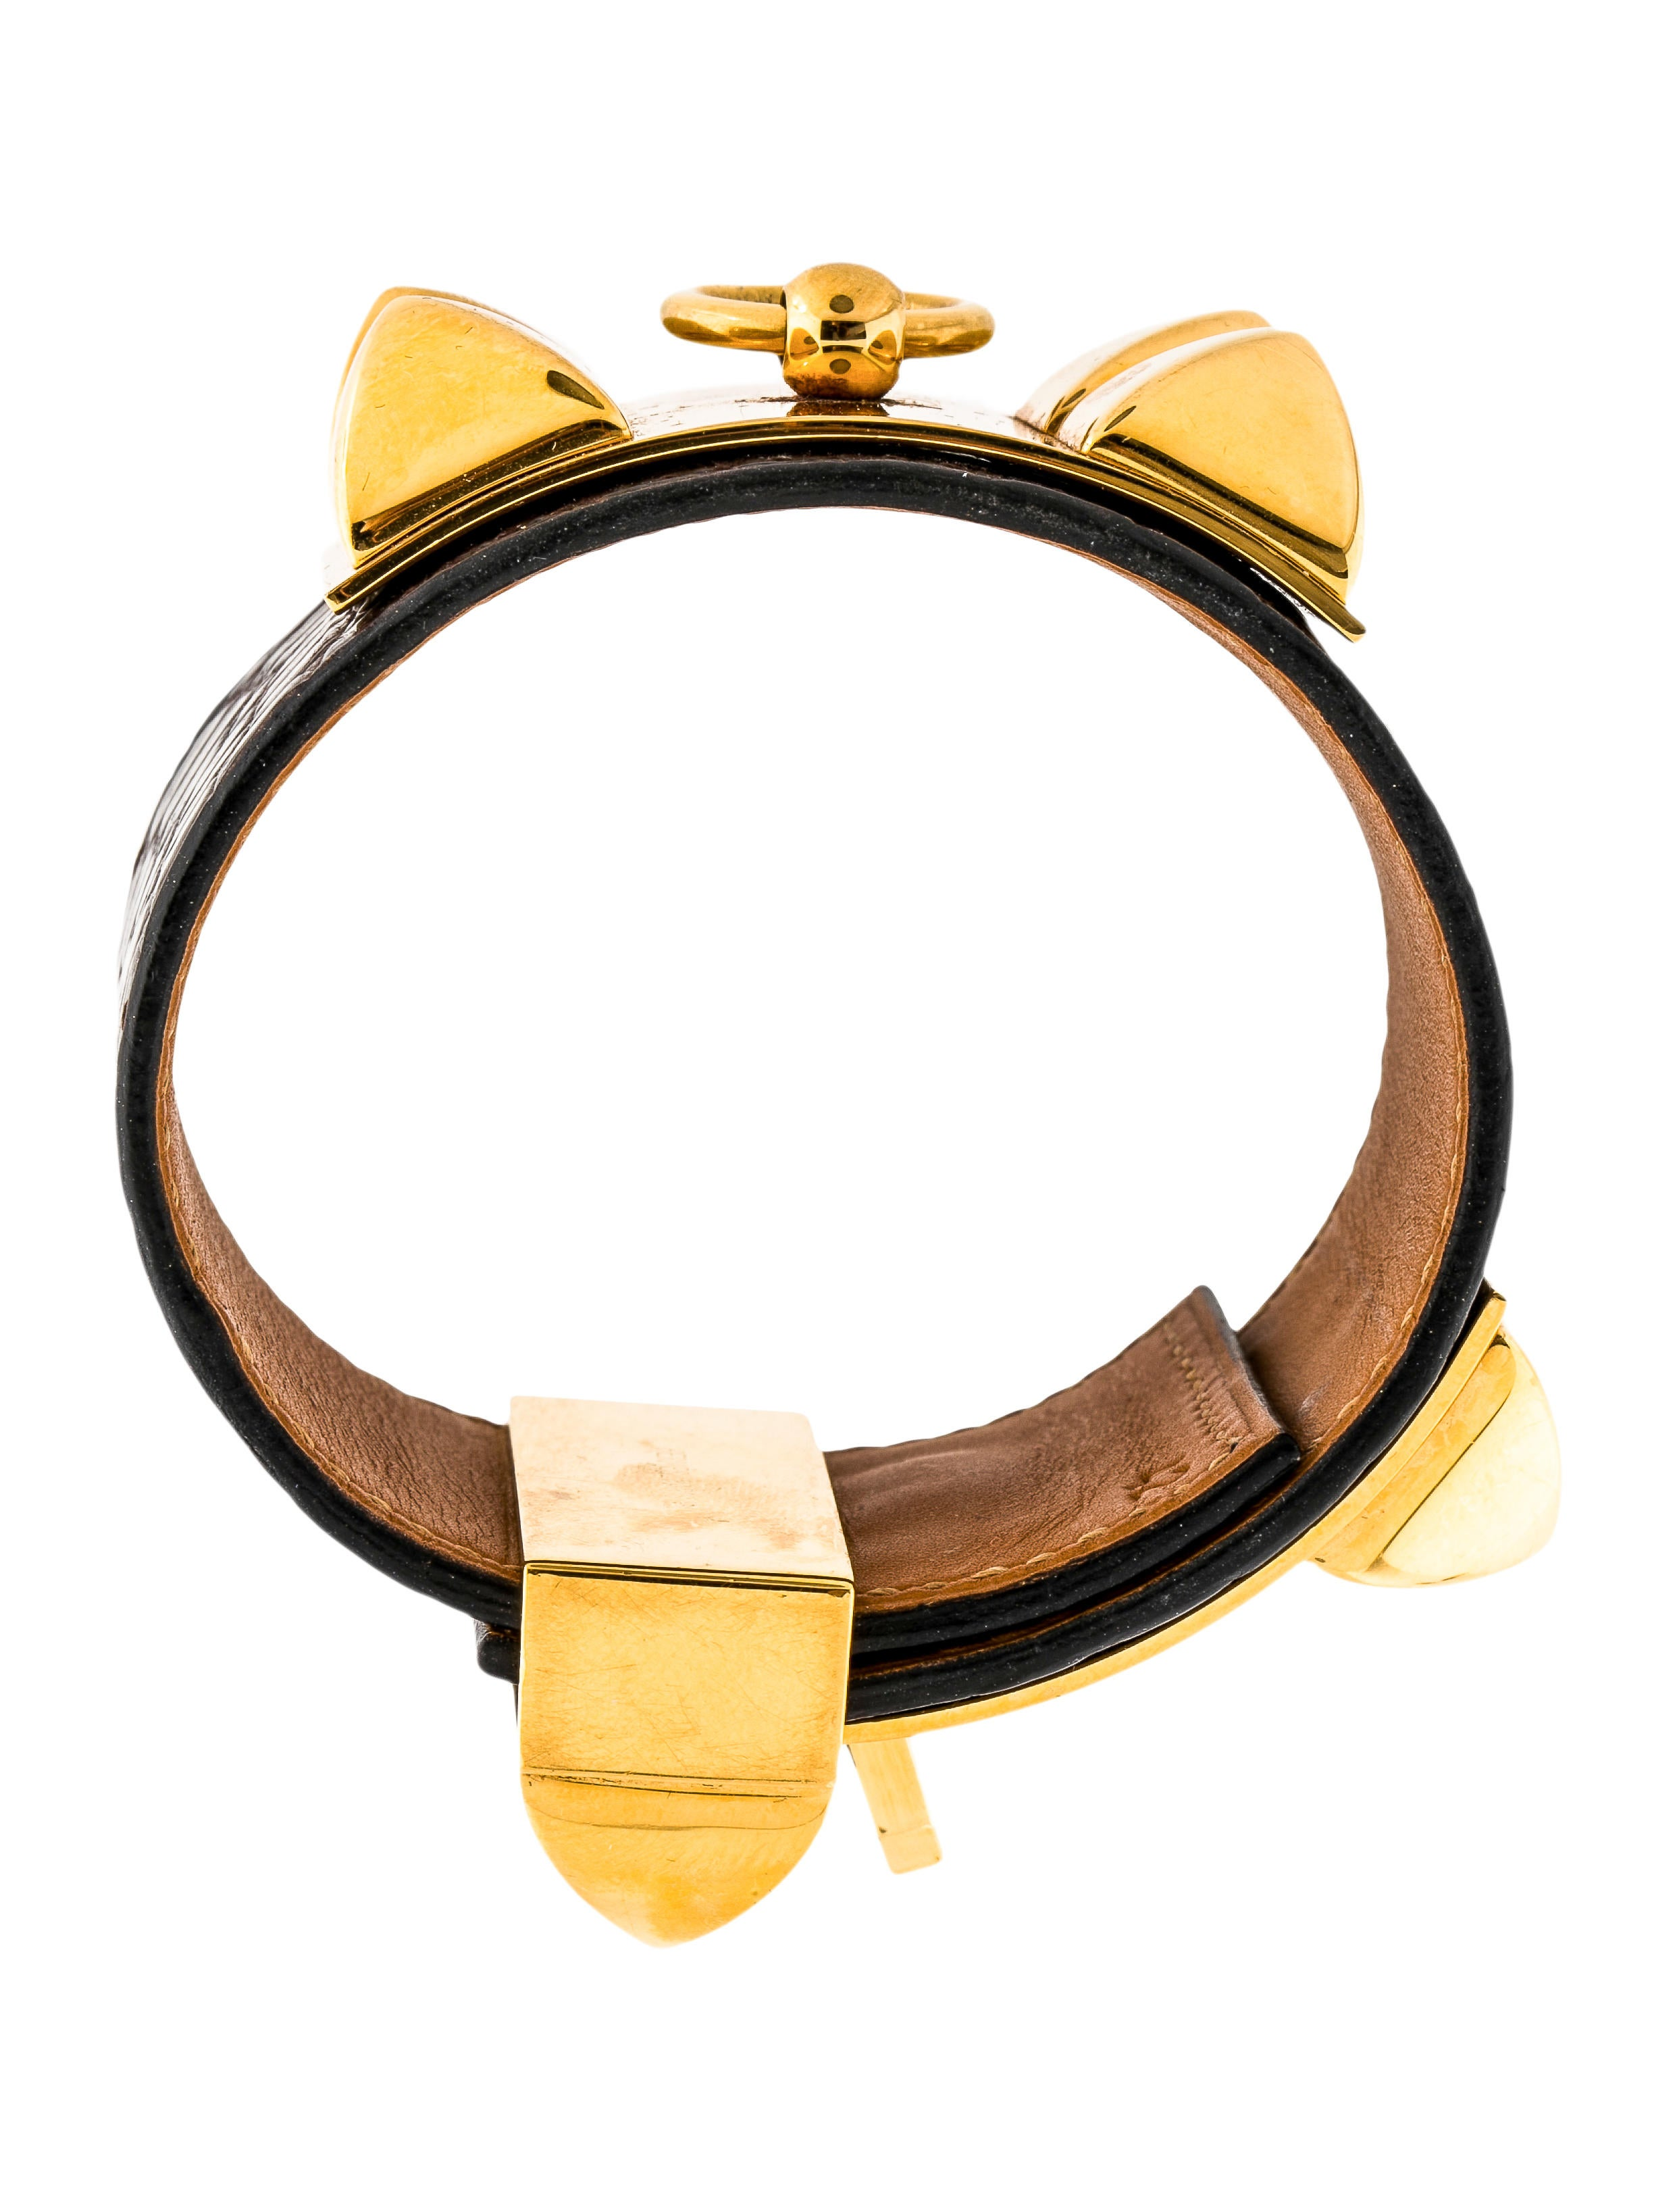 a collier an cartier pin de hermes with chien and chevron bracelet mini cuff love yellow chanel